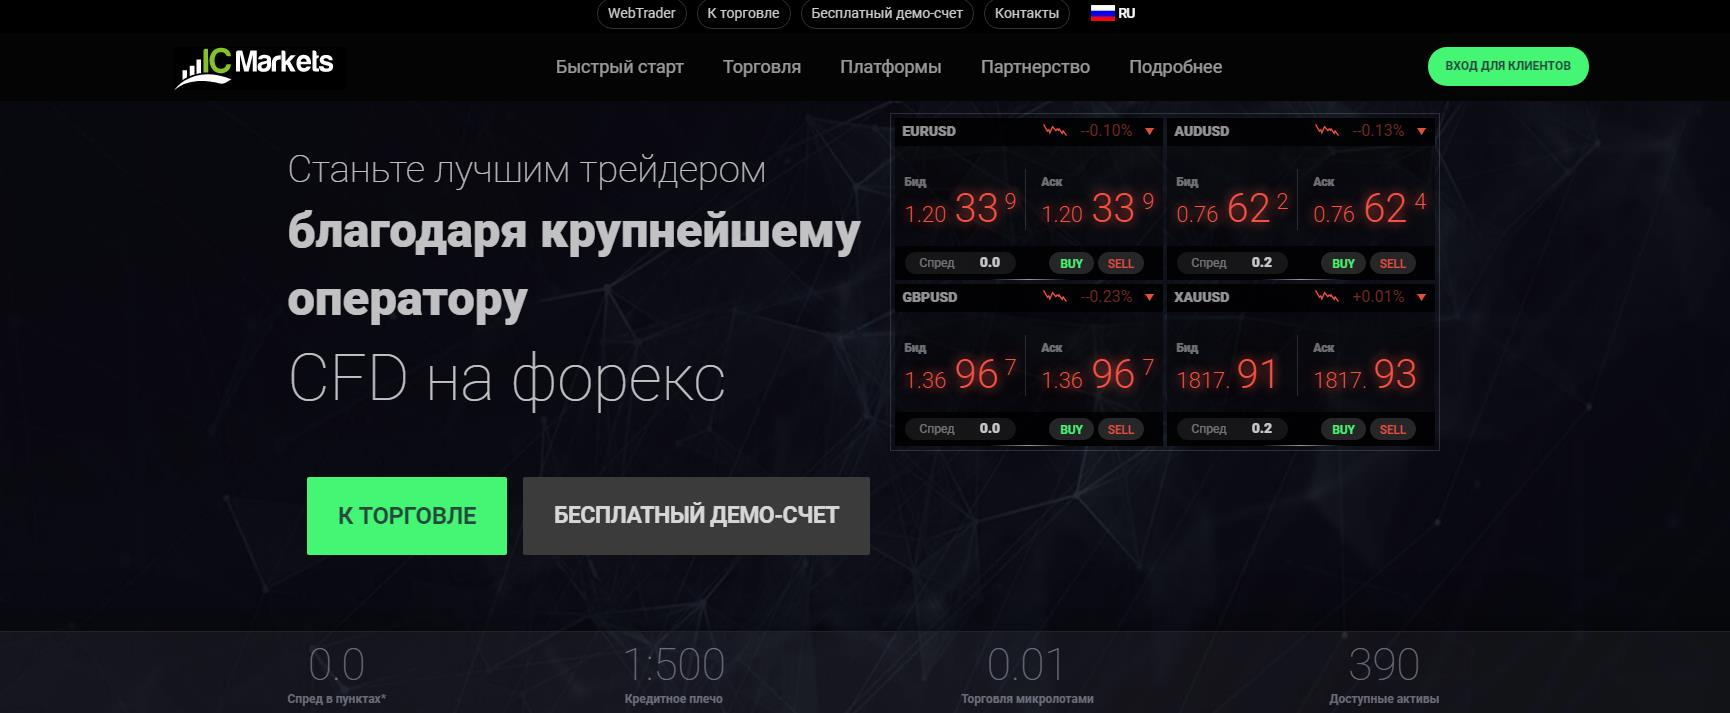 сайт брокера ic markets